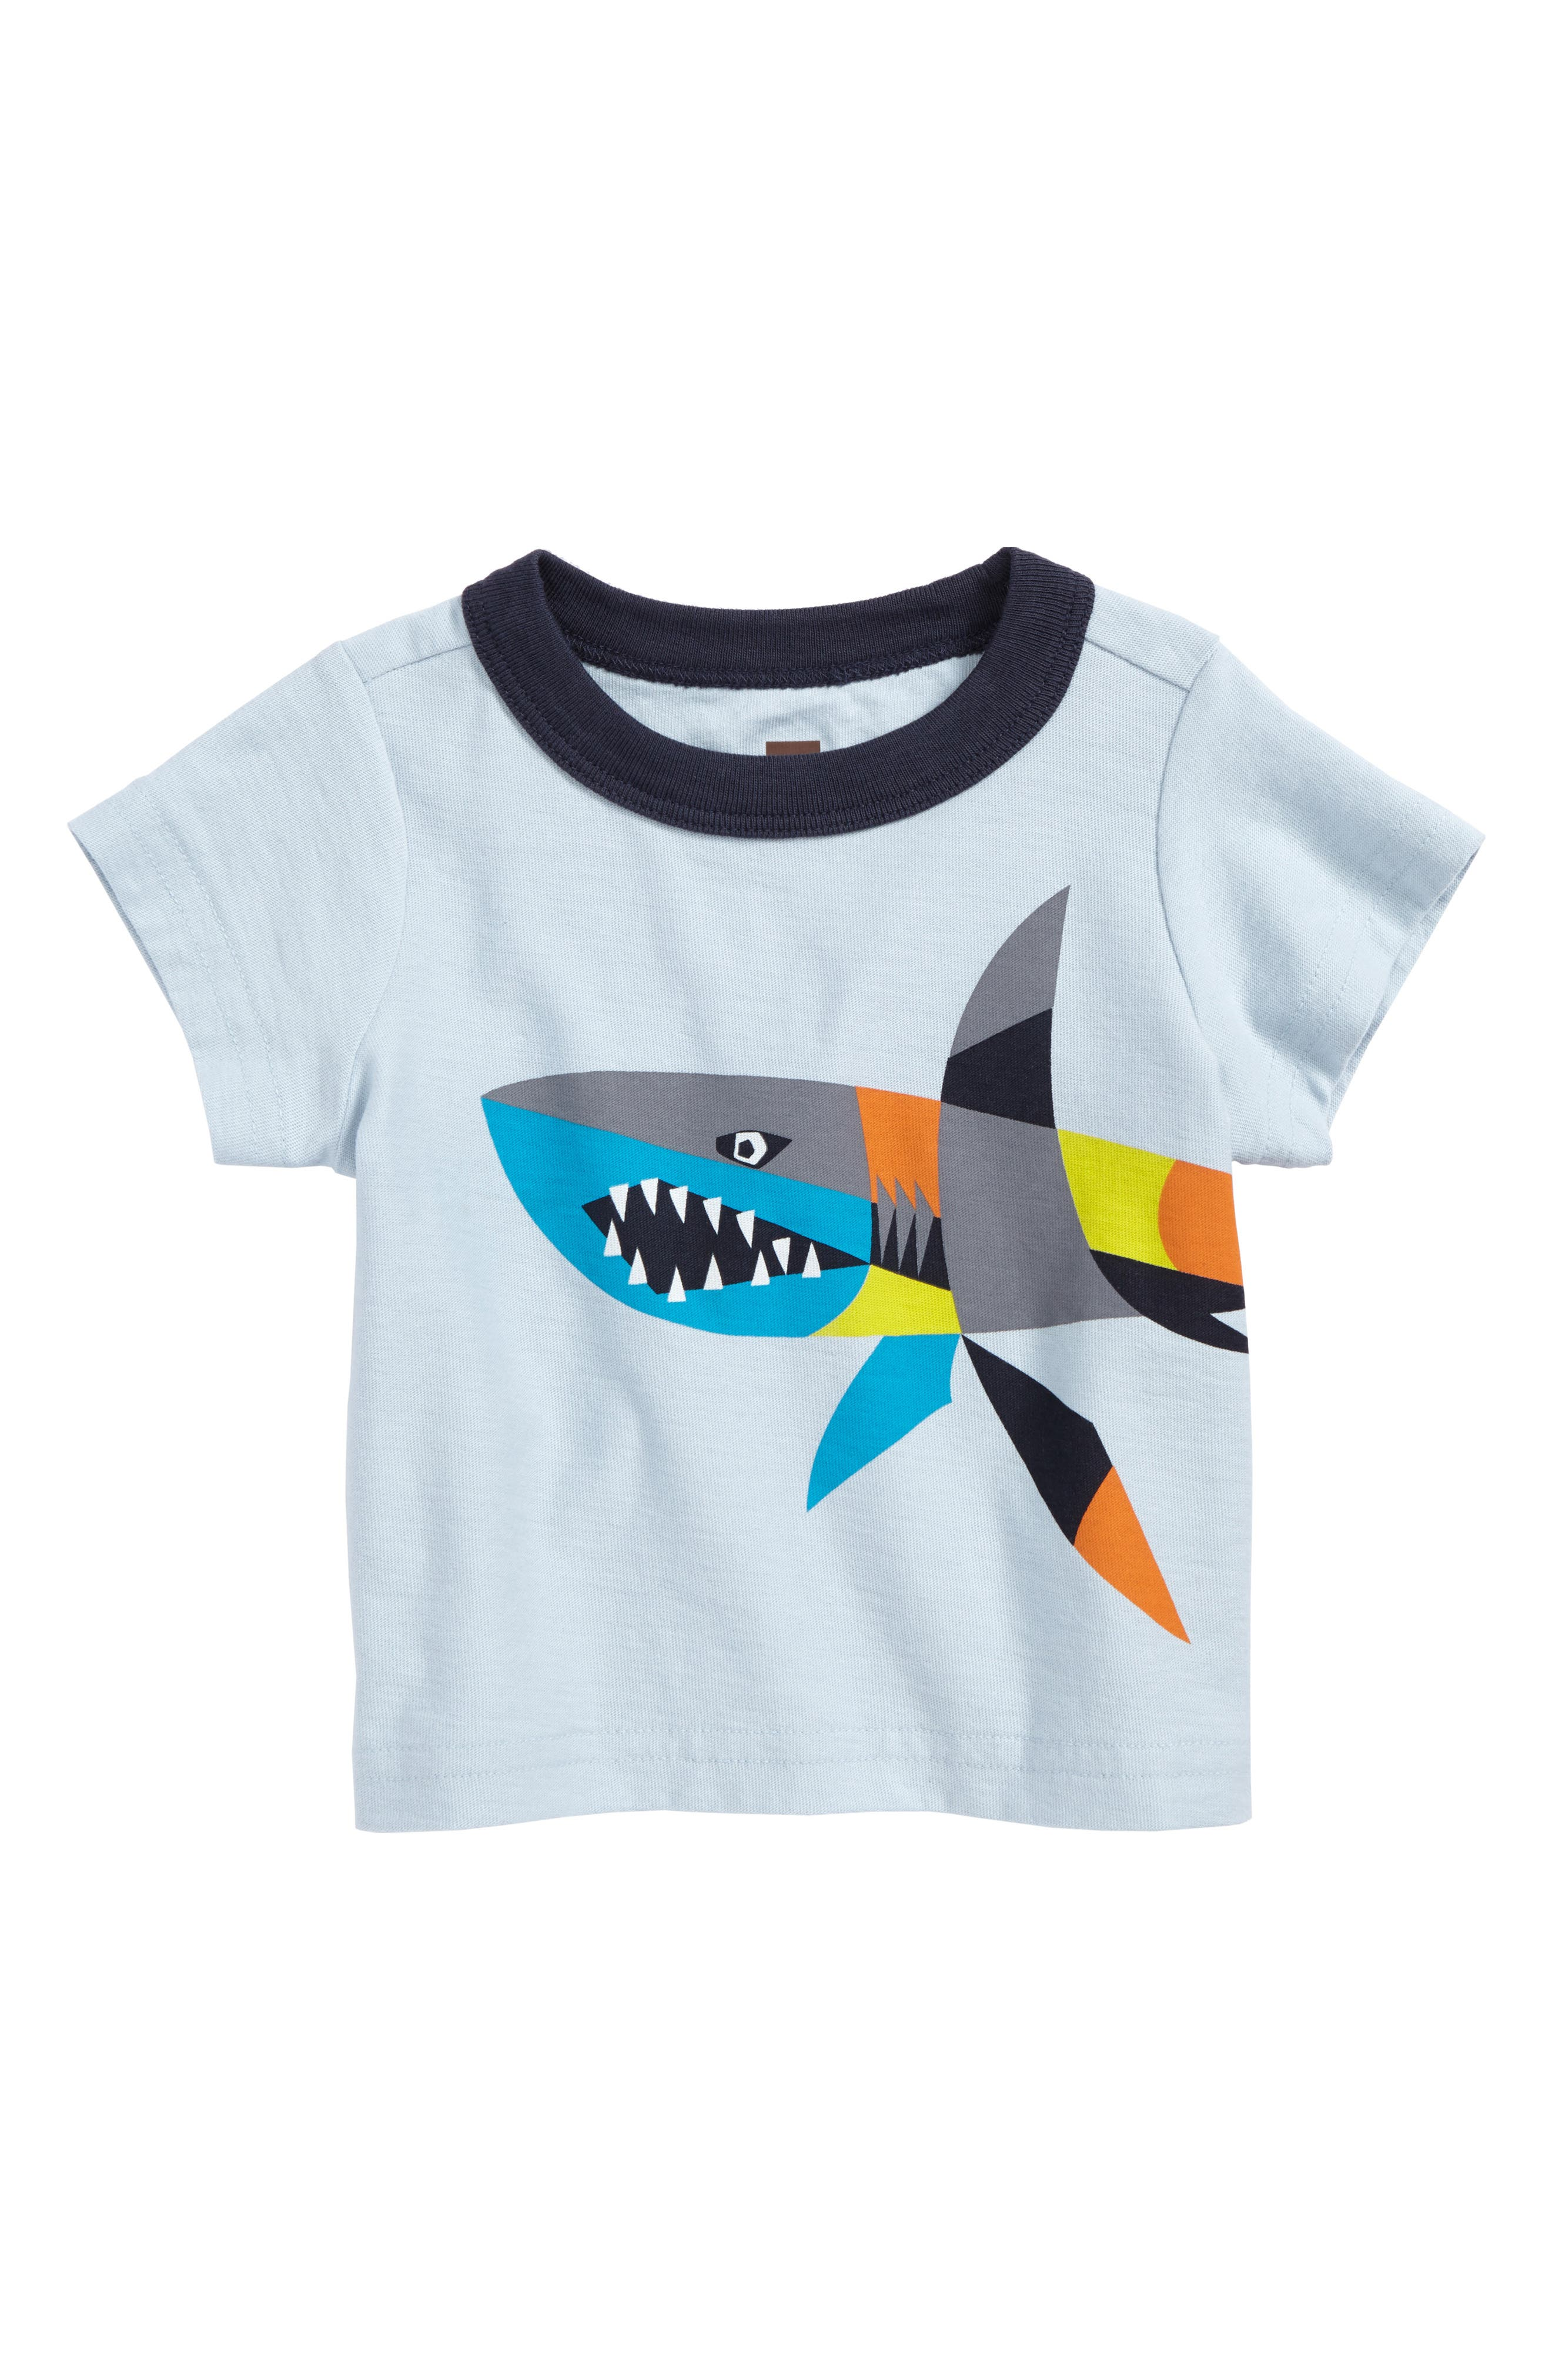 Alternate Image 1 Selected - Tea Collection Chomper T-Shirt (Baby Boys)